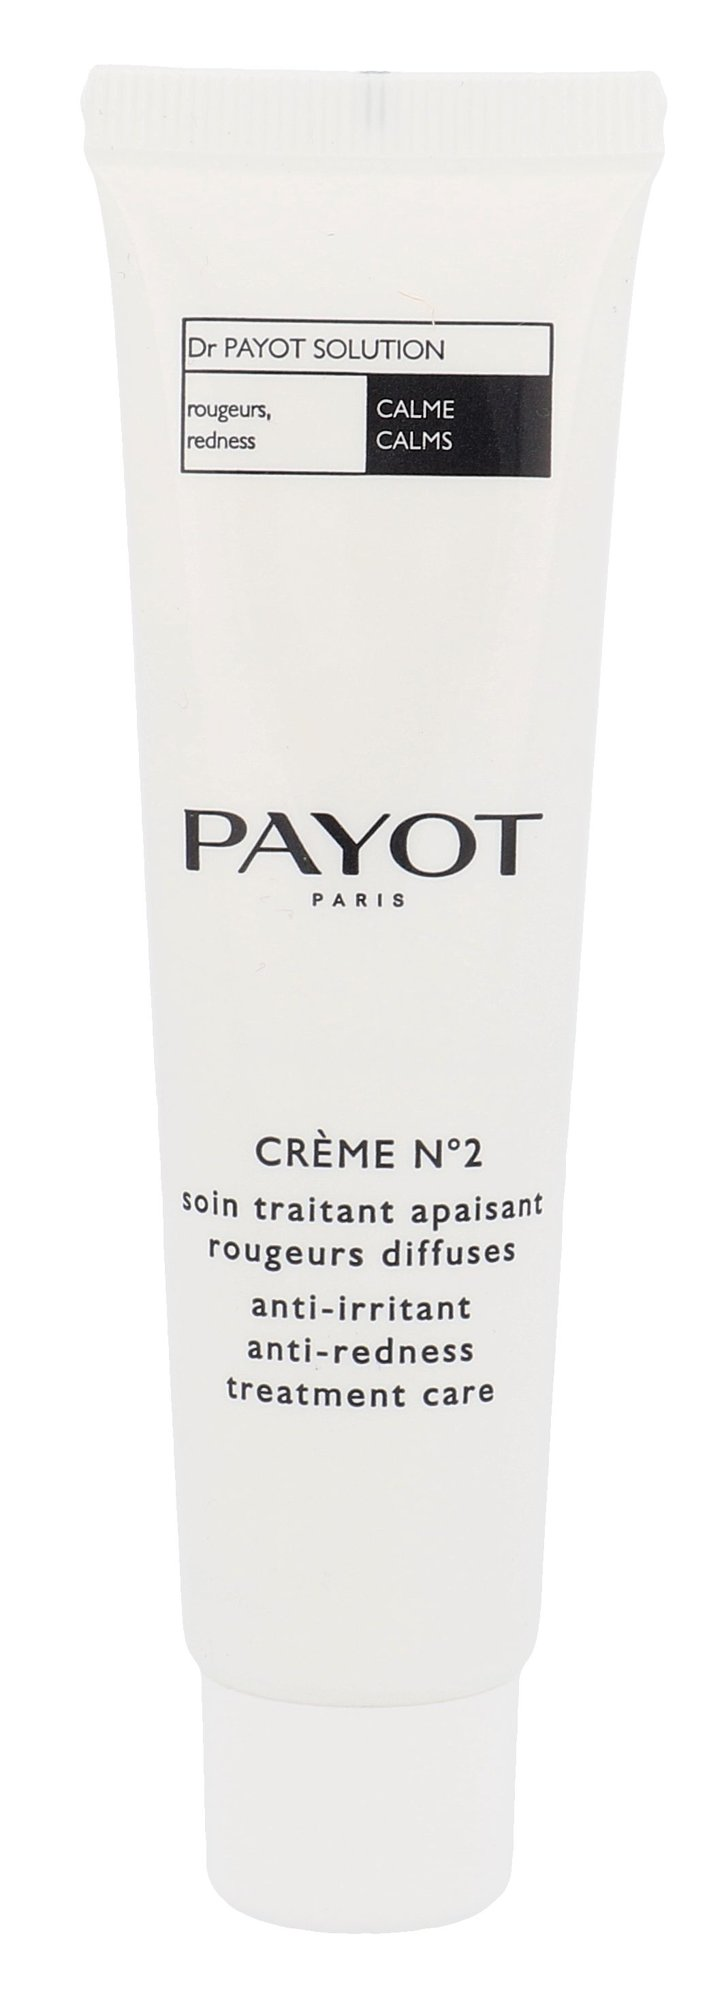 PAYOT Dr Payot Solution Cosmetic 30ml